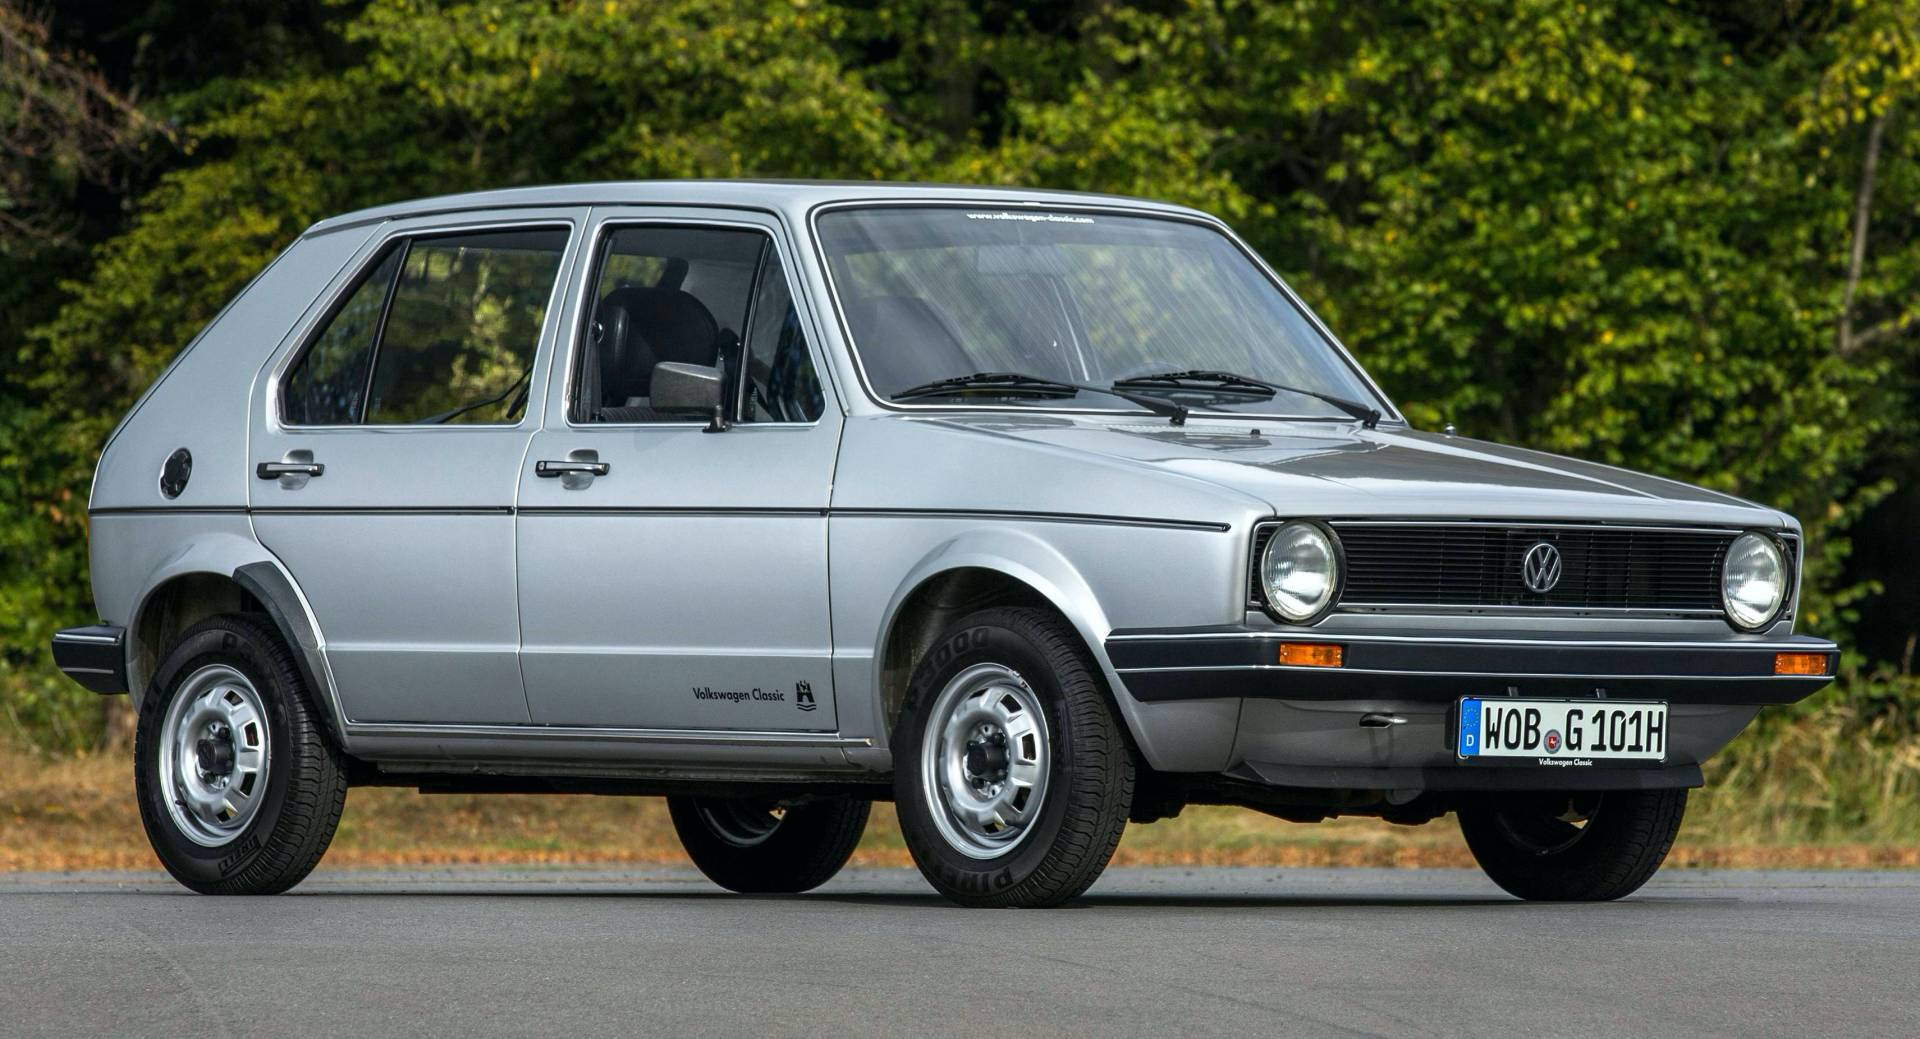 Vw Golf Countdown 1974 1983 Mk1 Set The Gold Standard For Compact Hatchbacks Carscoops